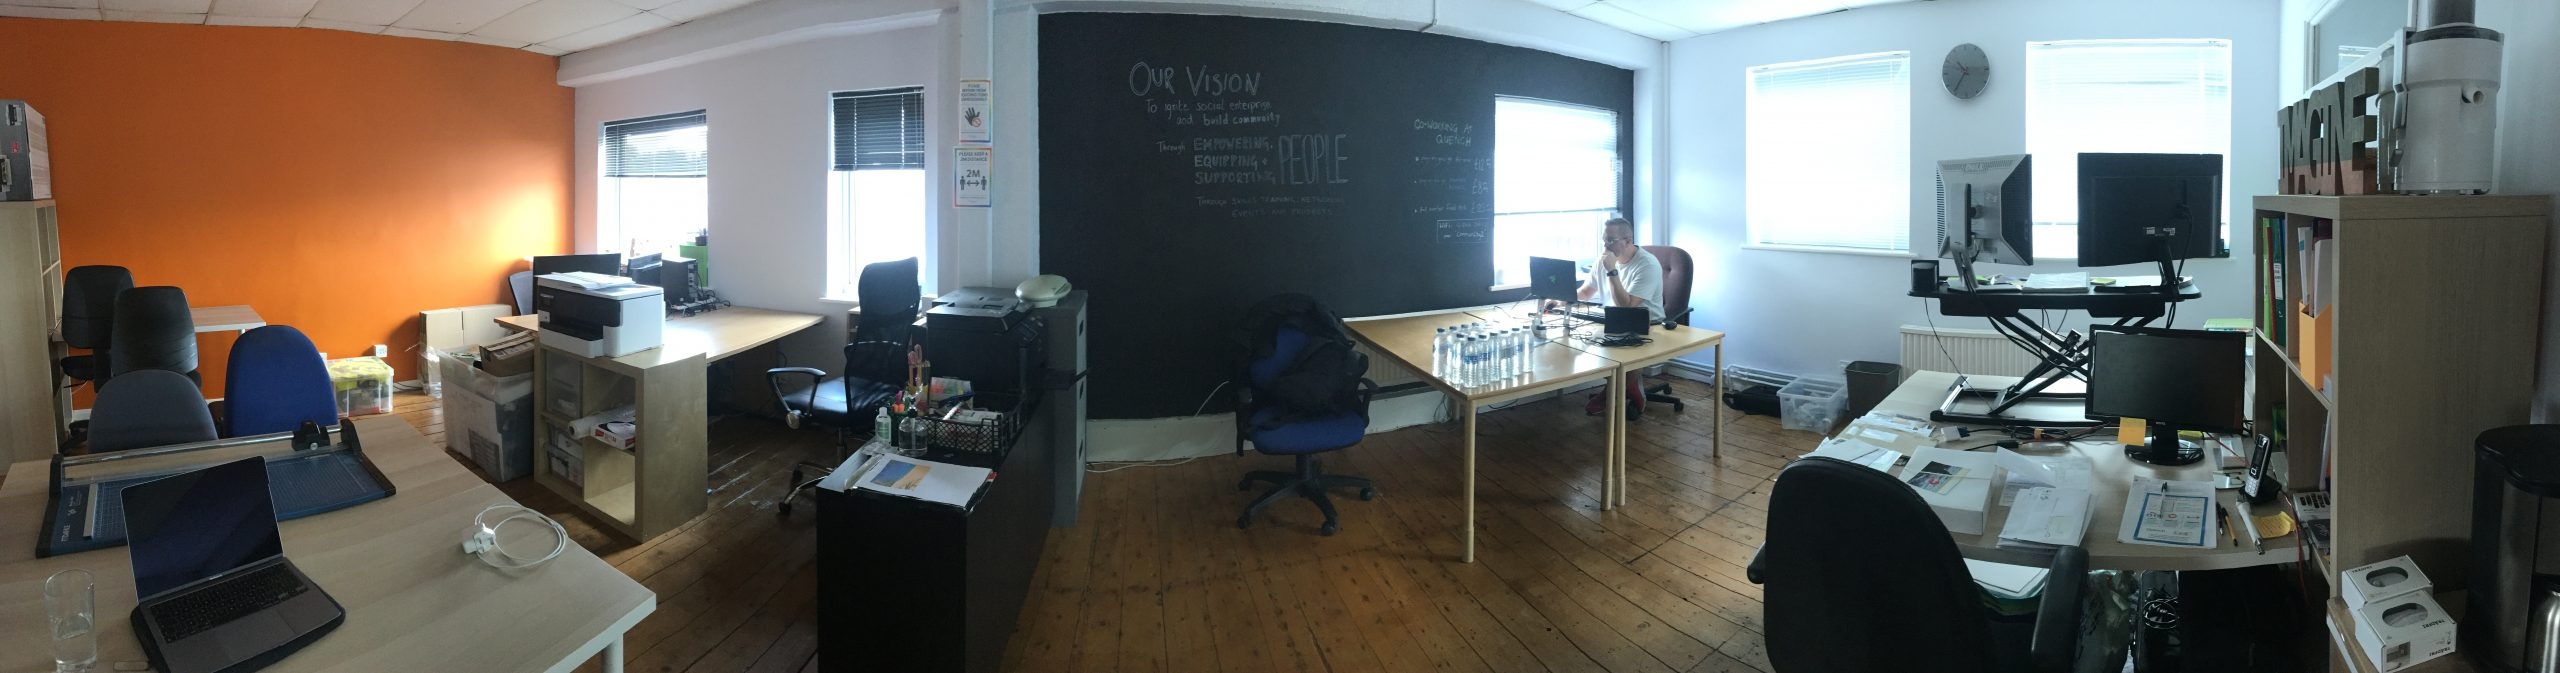 panoramic view of coworking offices with desks and equipment